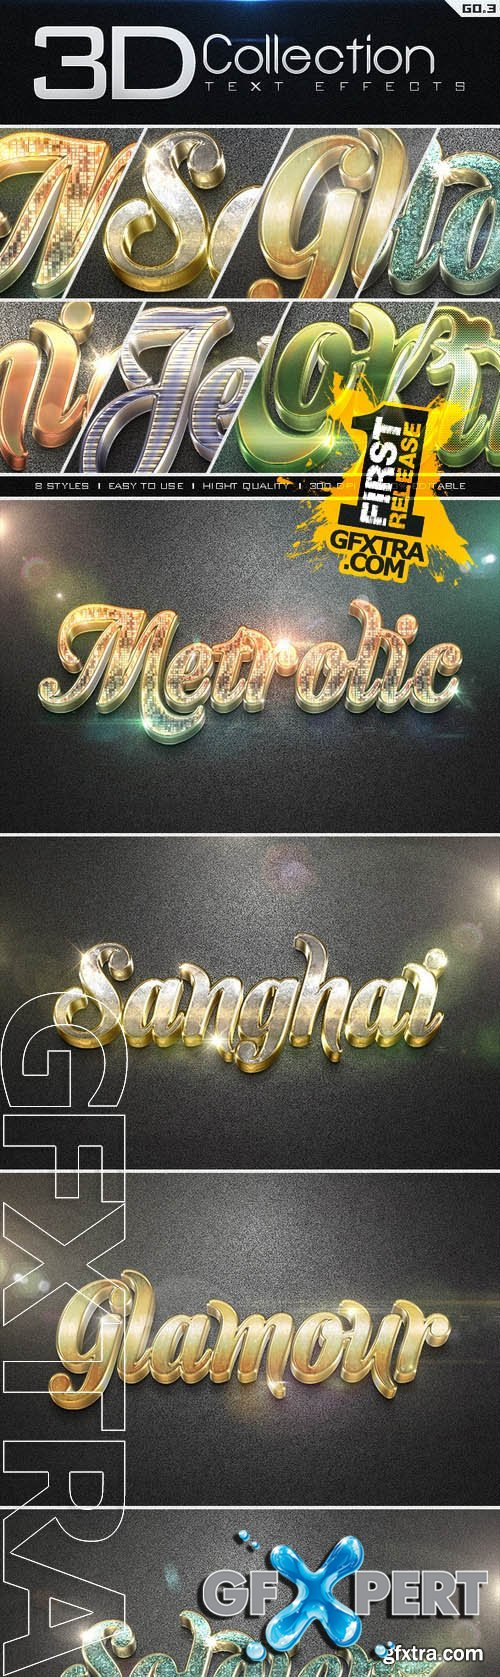 3D Collection Text Effects GO.3 - Graphicriver 8896234